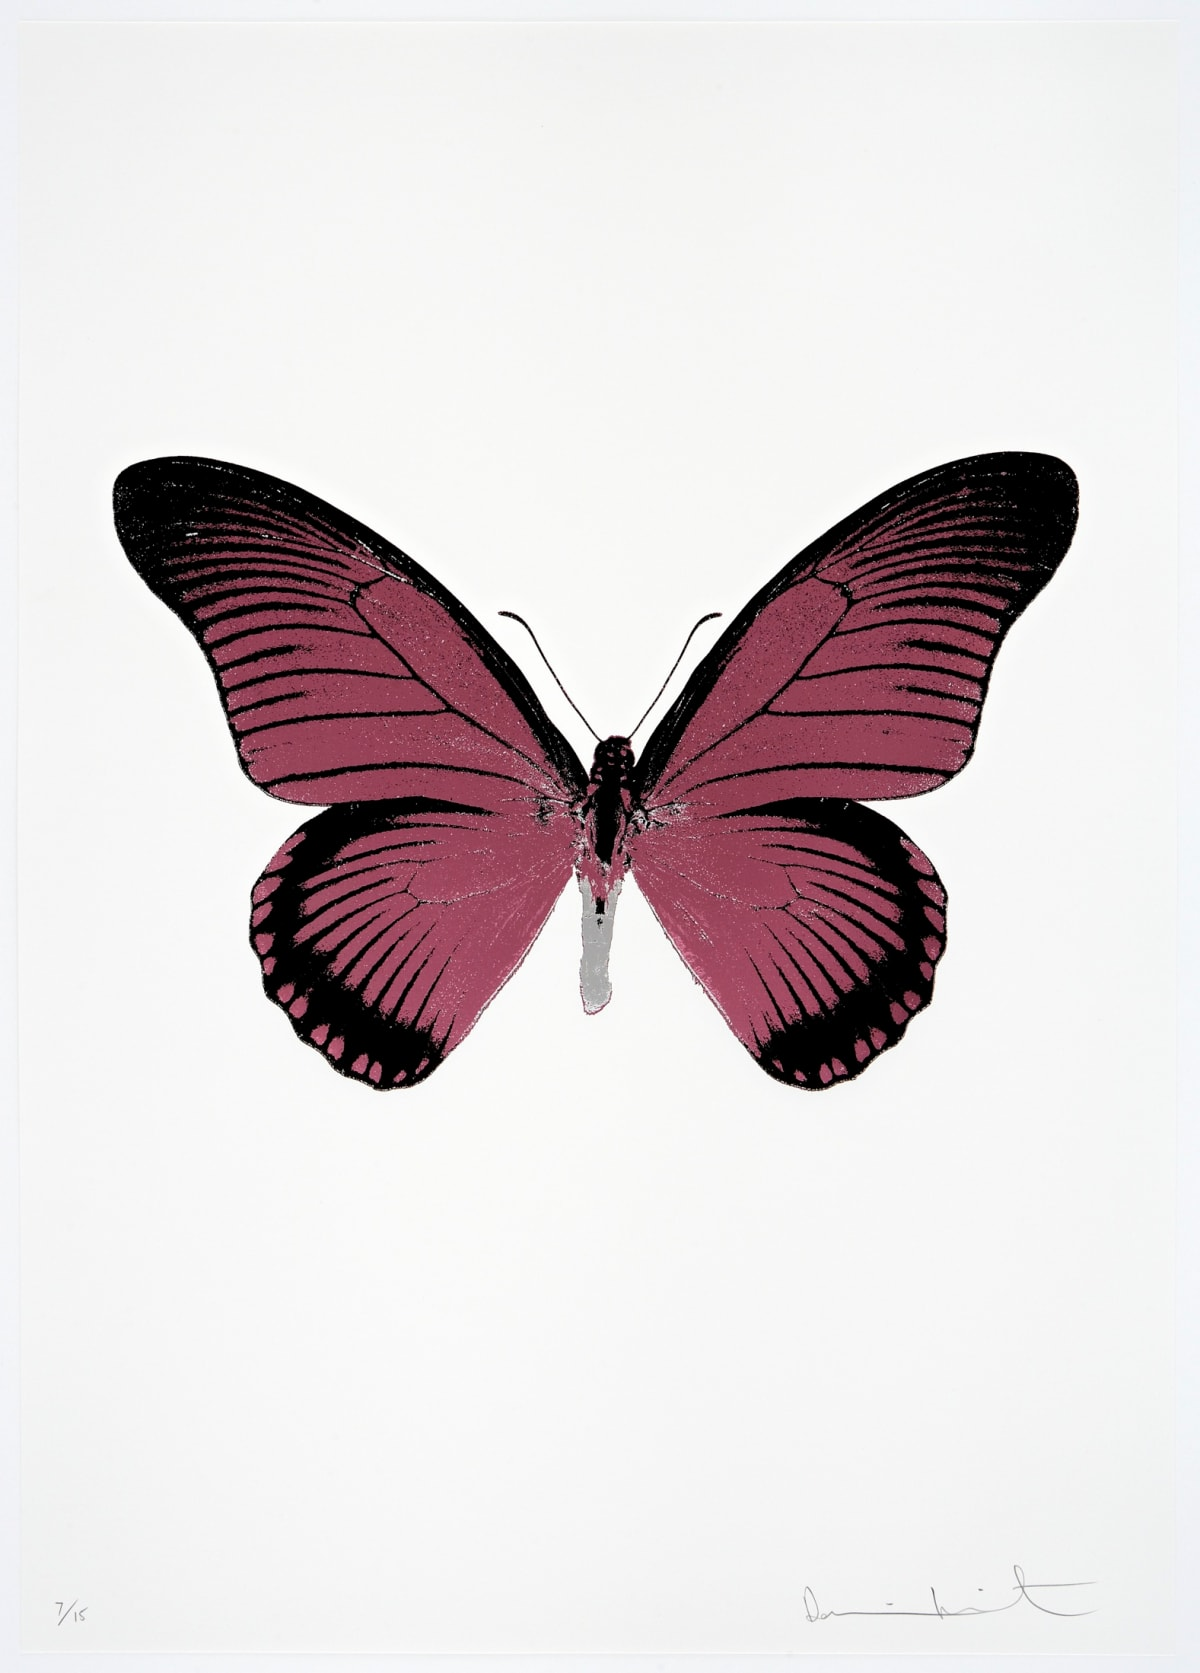 Damien Hirst The Souls IV - Loganberry Pink/Raven Black/Silver Gloss, 2010 3 colour foil block on 300gsm Arches 88 archival paper. Signed and numbered. Published by Paul Stolper and Other Criteria 72 x 51cm OC8011 / 1418-34 Edition of 15